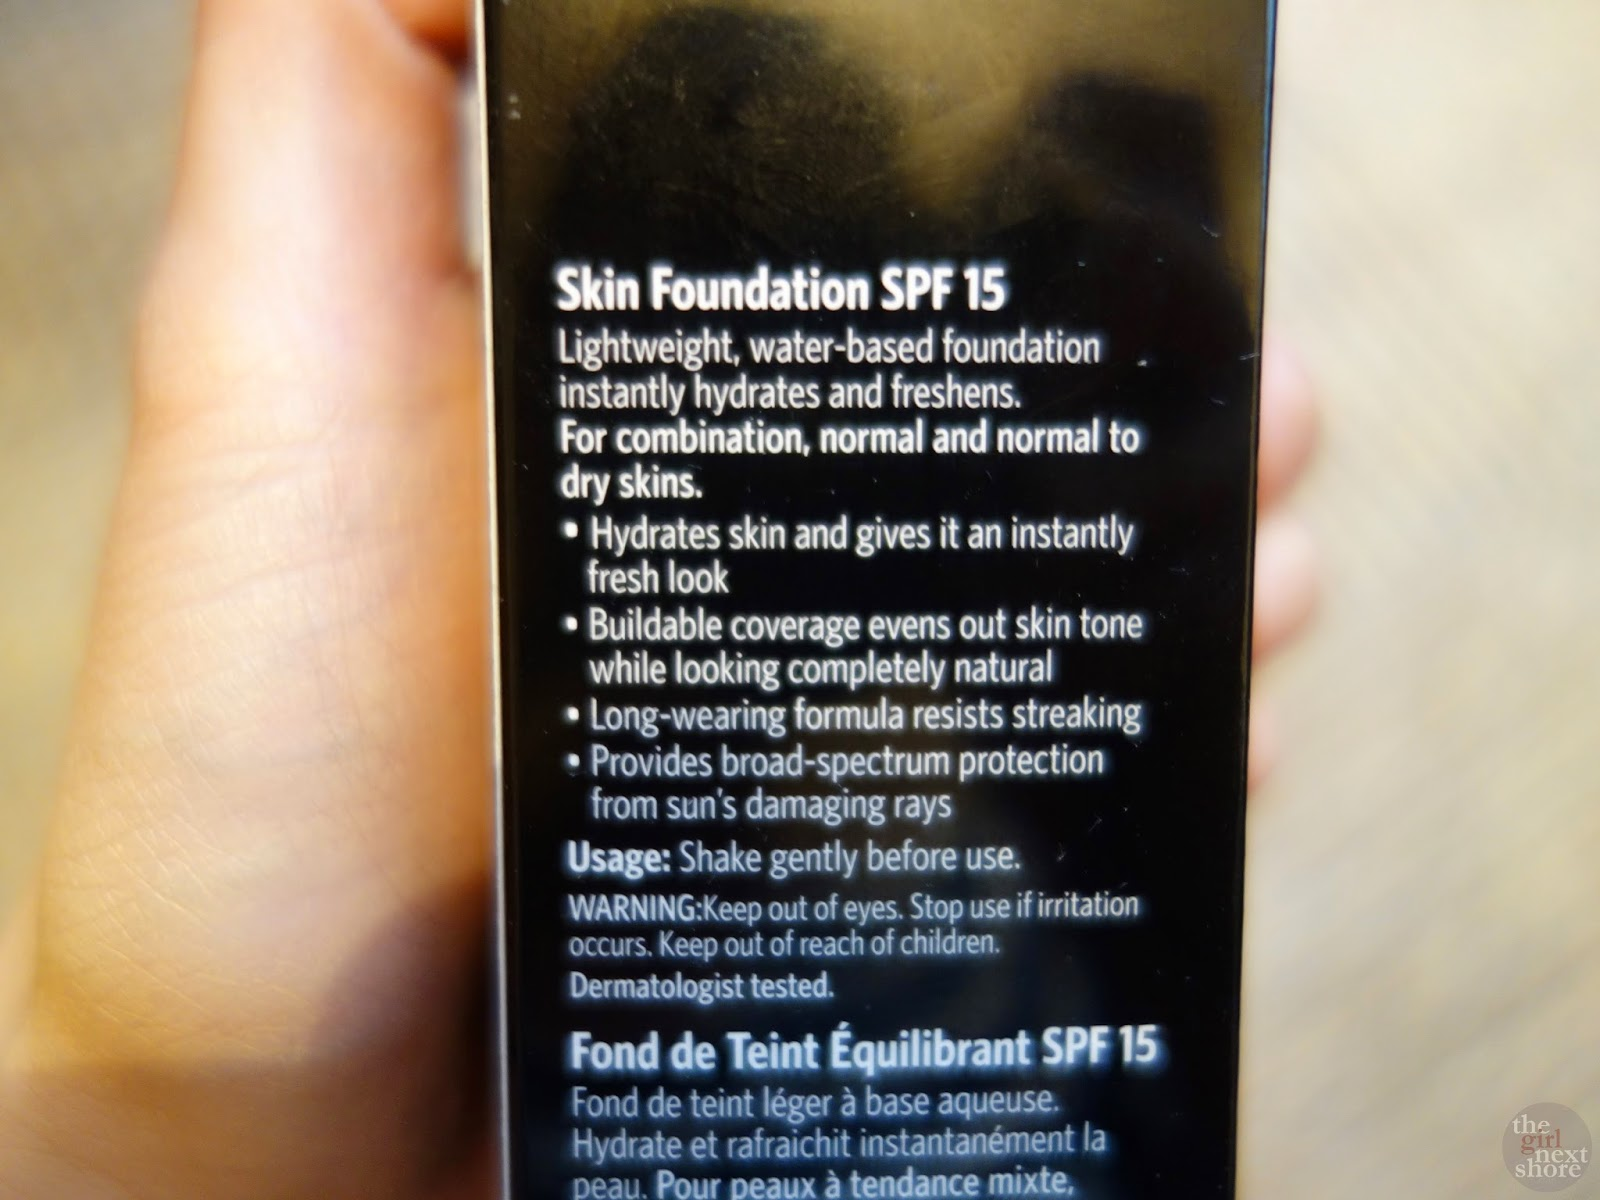 Skin Y Love At First Swipe Bobbi Brown Skin Foundation Spf15 The